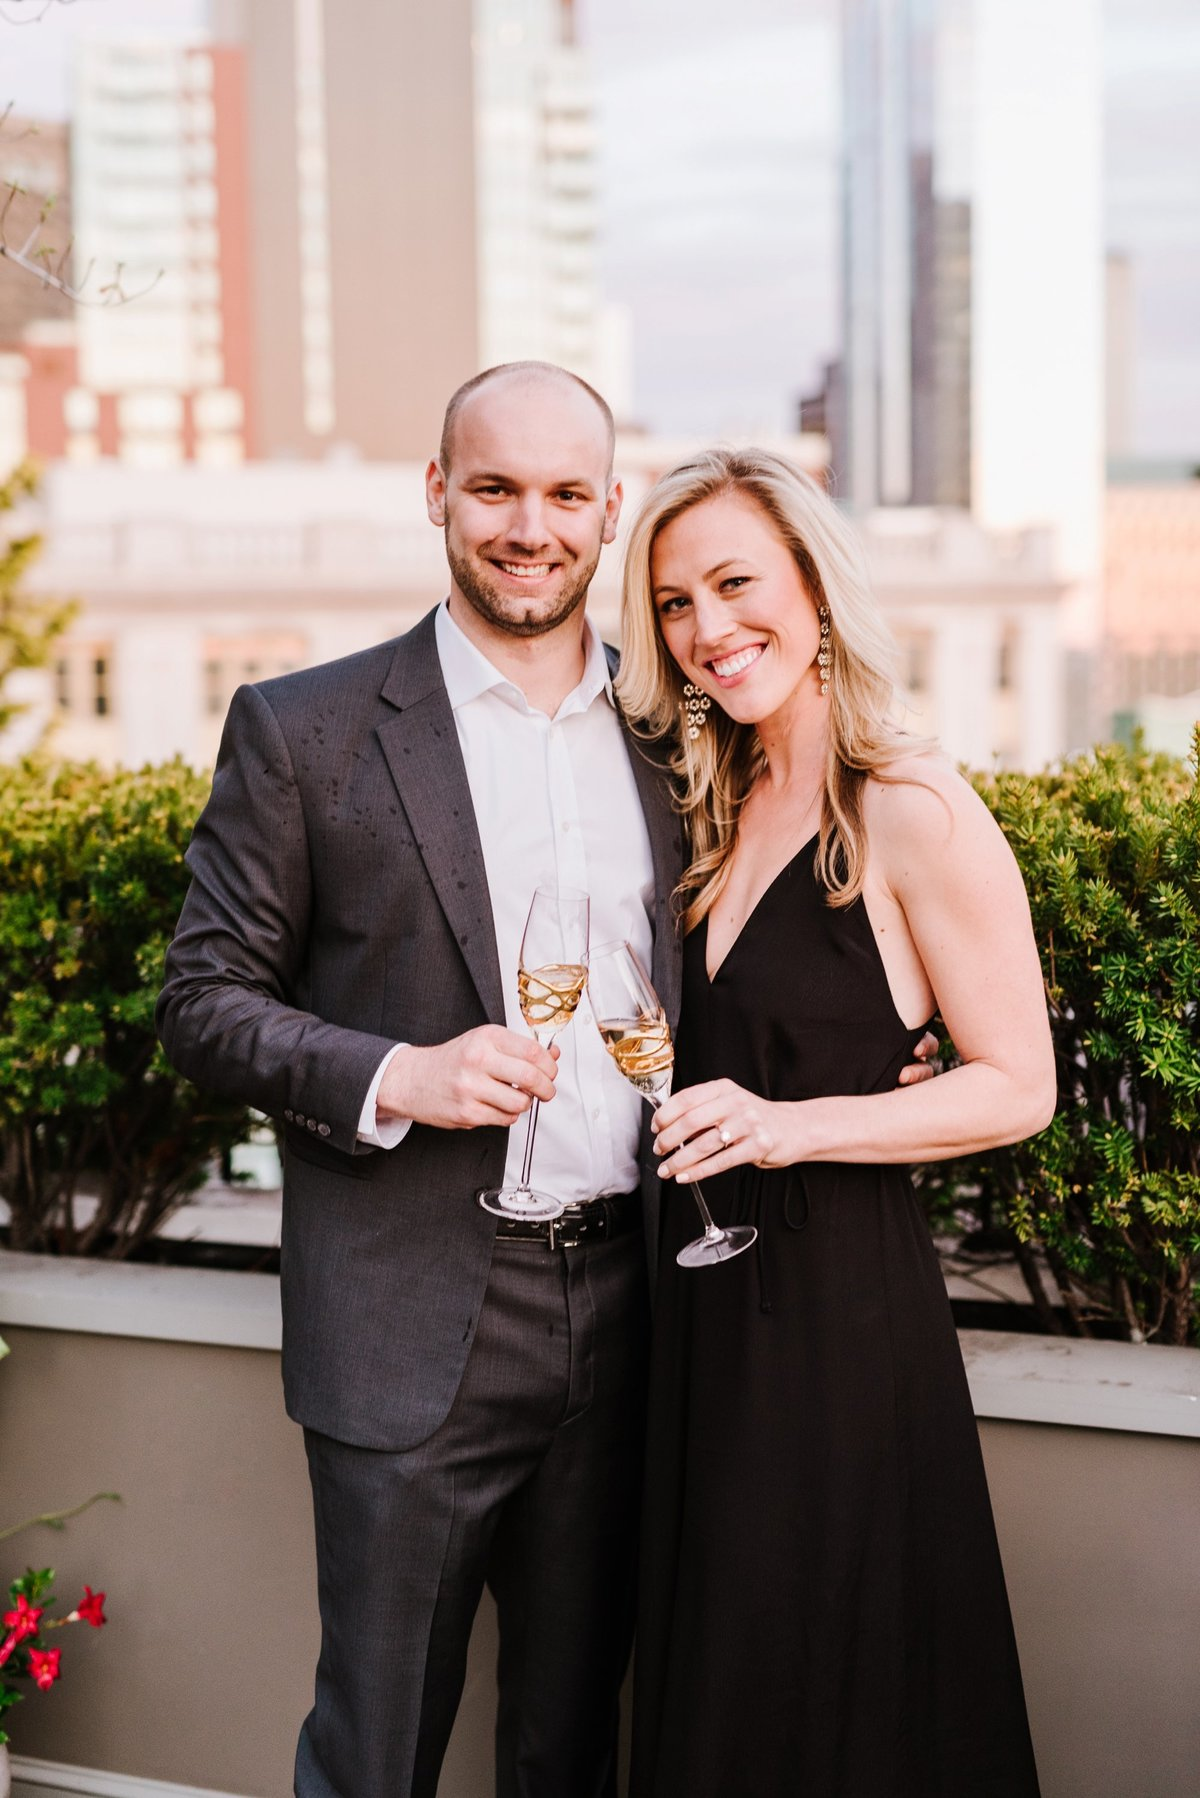 seaport-district-beacon-hill-engagement-session-boston-wedding-photographer-photo_0031